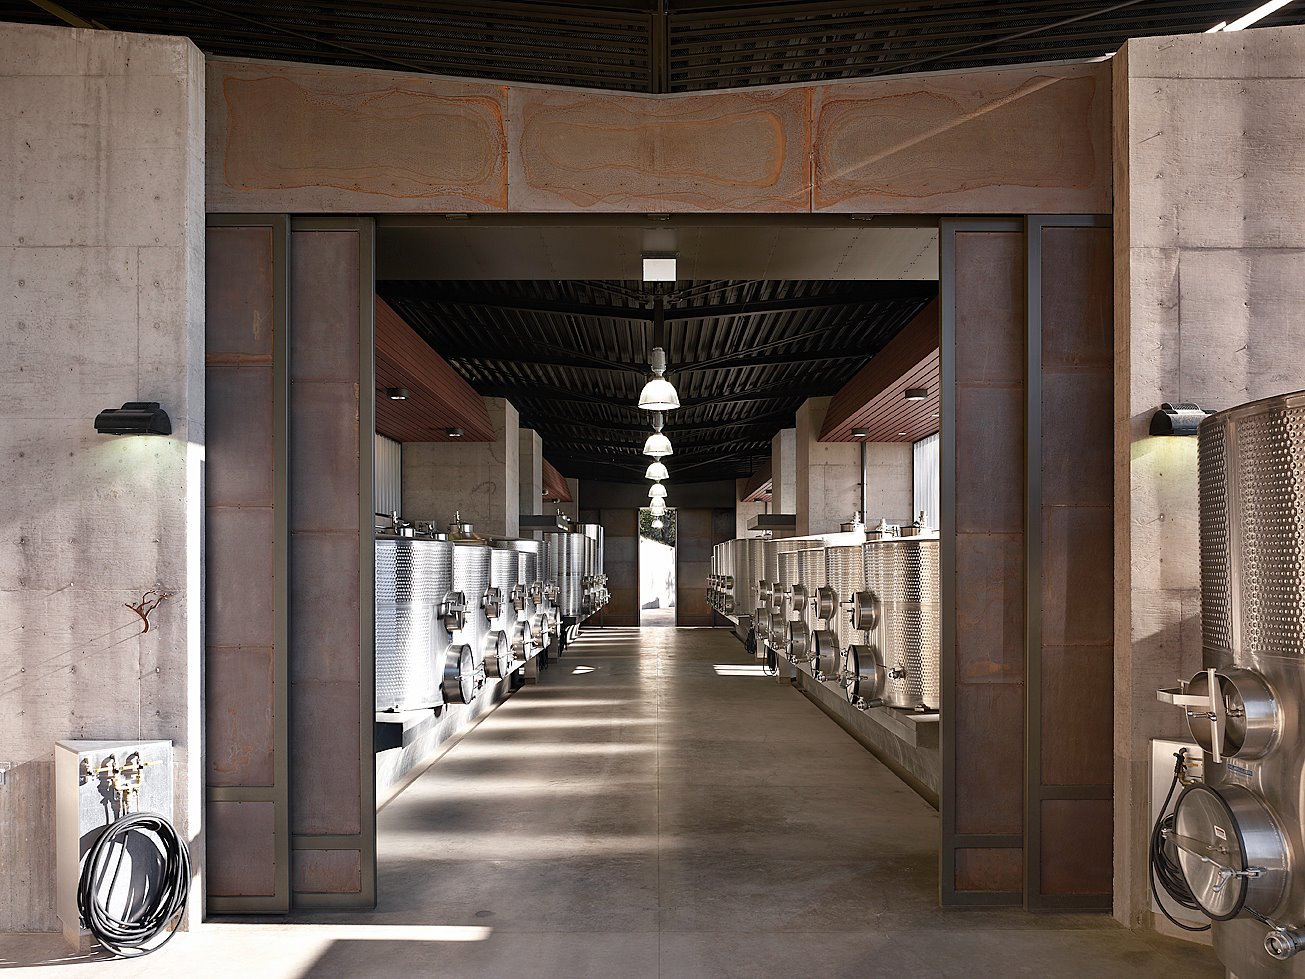 The wine-making facility at Cade